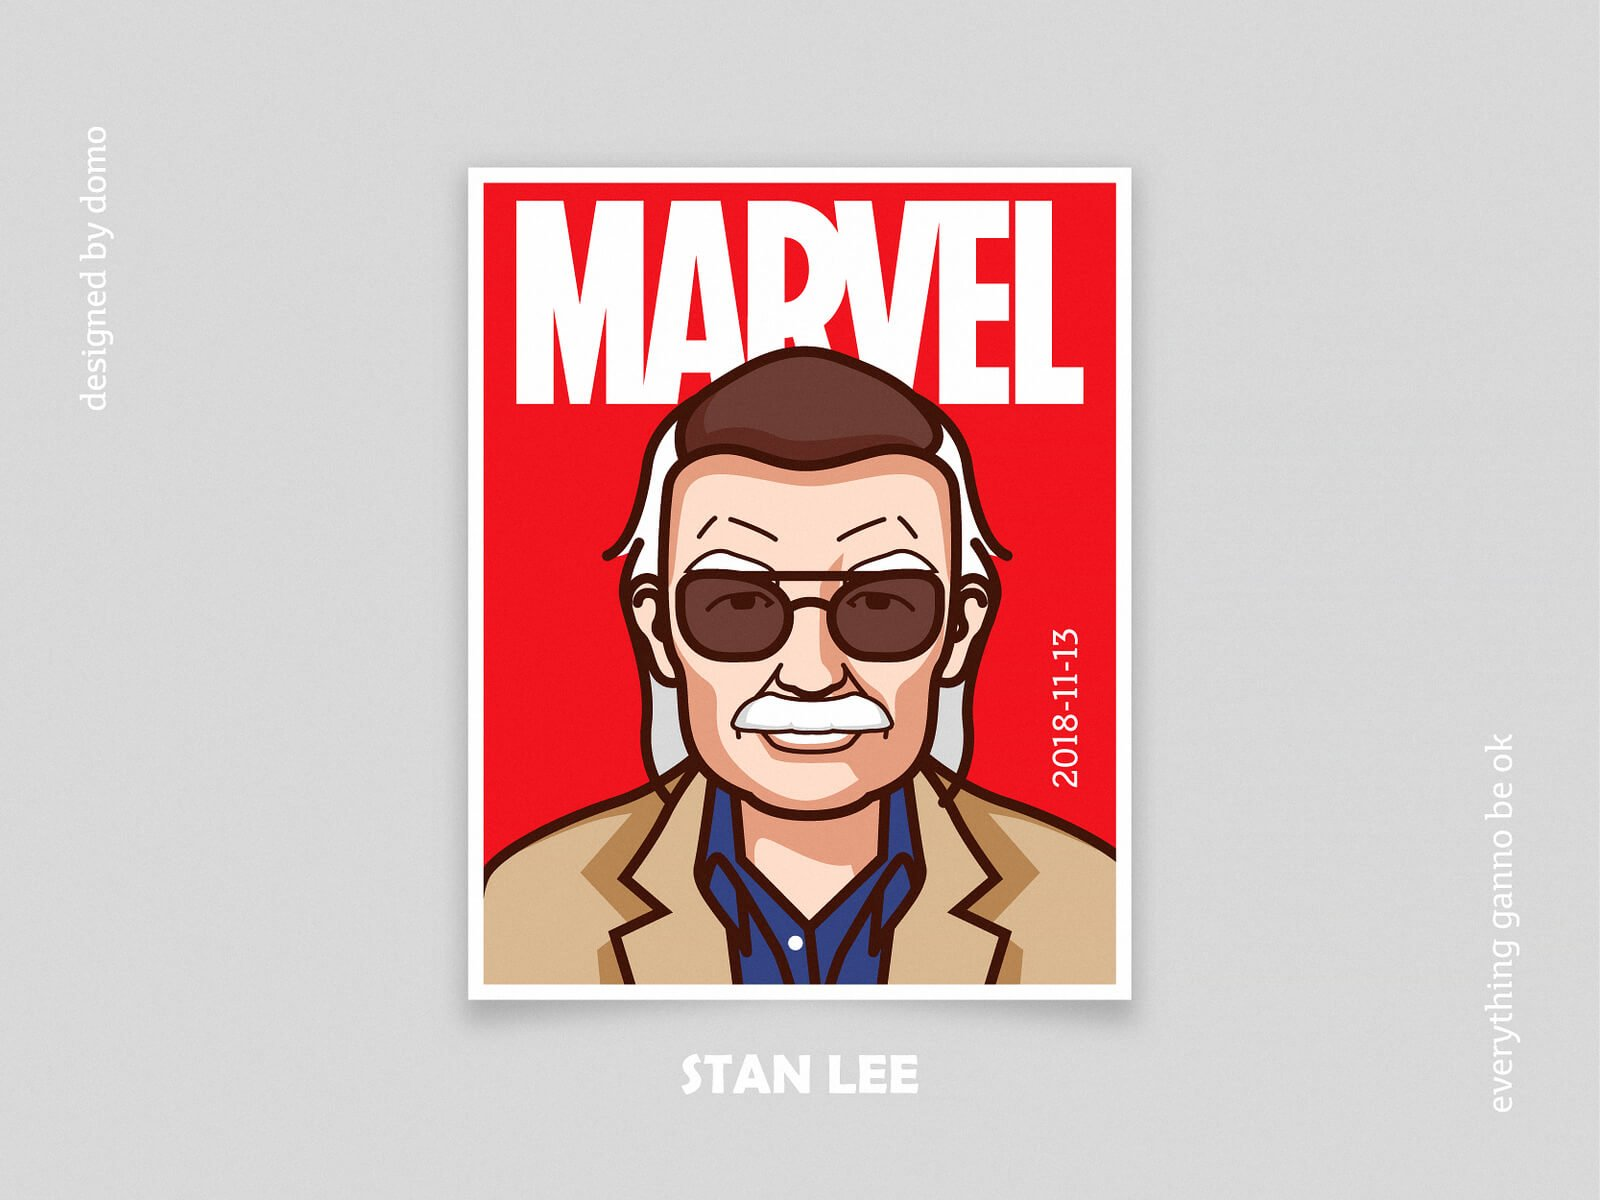 Stan lee by Domo Z via Dribbble